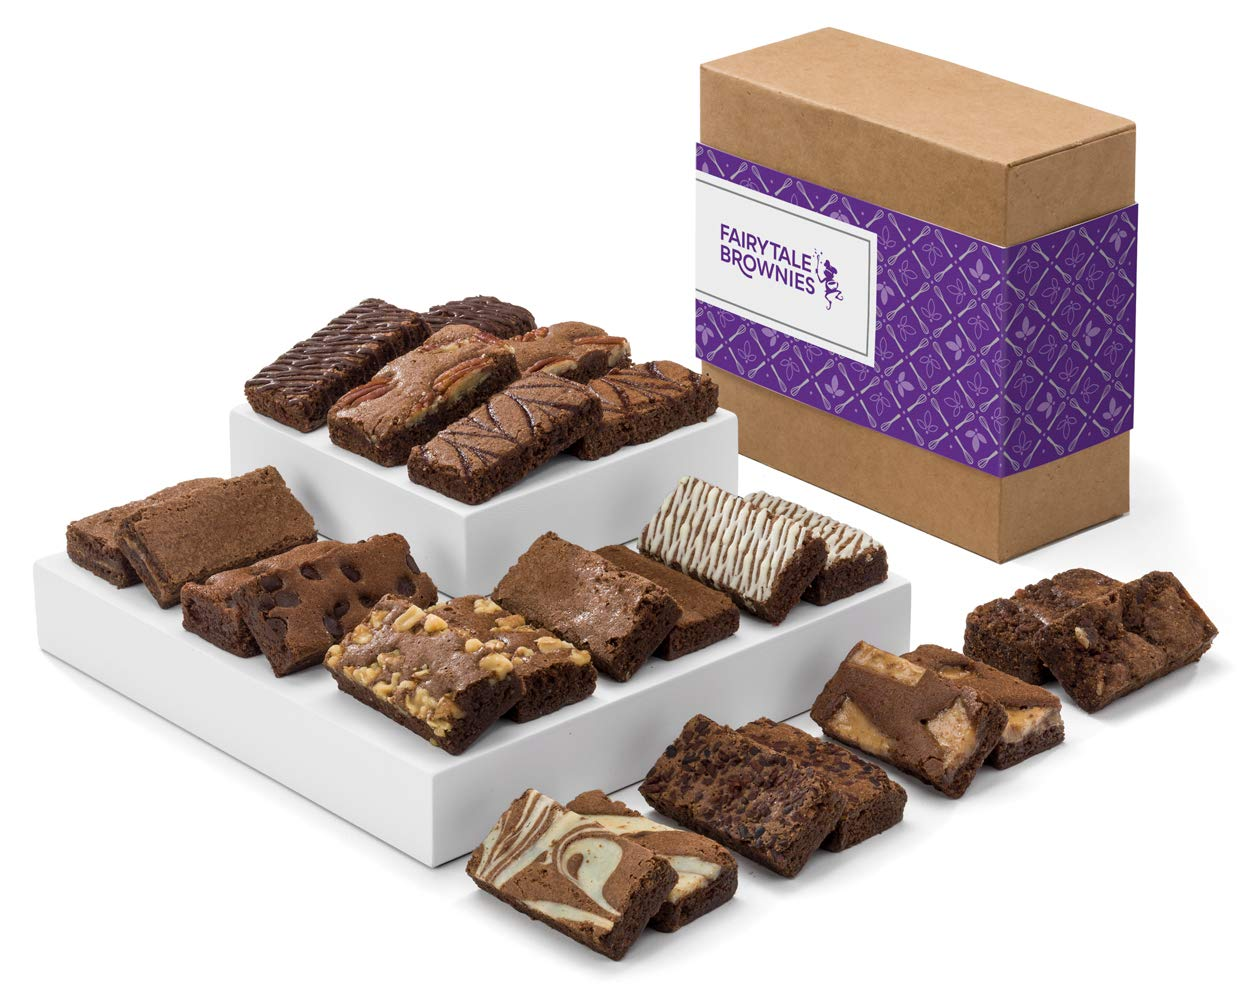 Fairytale Brownies Sprite 24 Individually Wrapped Gourmet Chocolate Food Gift Basket - 3 Inch x 1.5 Inch Snack-Size Brownies - 24 Pieces - Item CF224